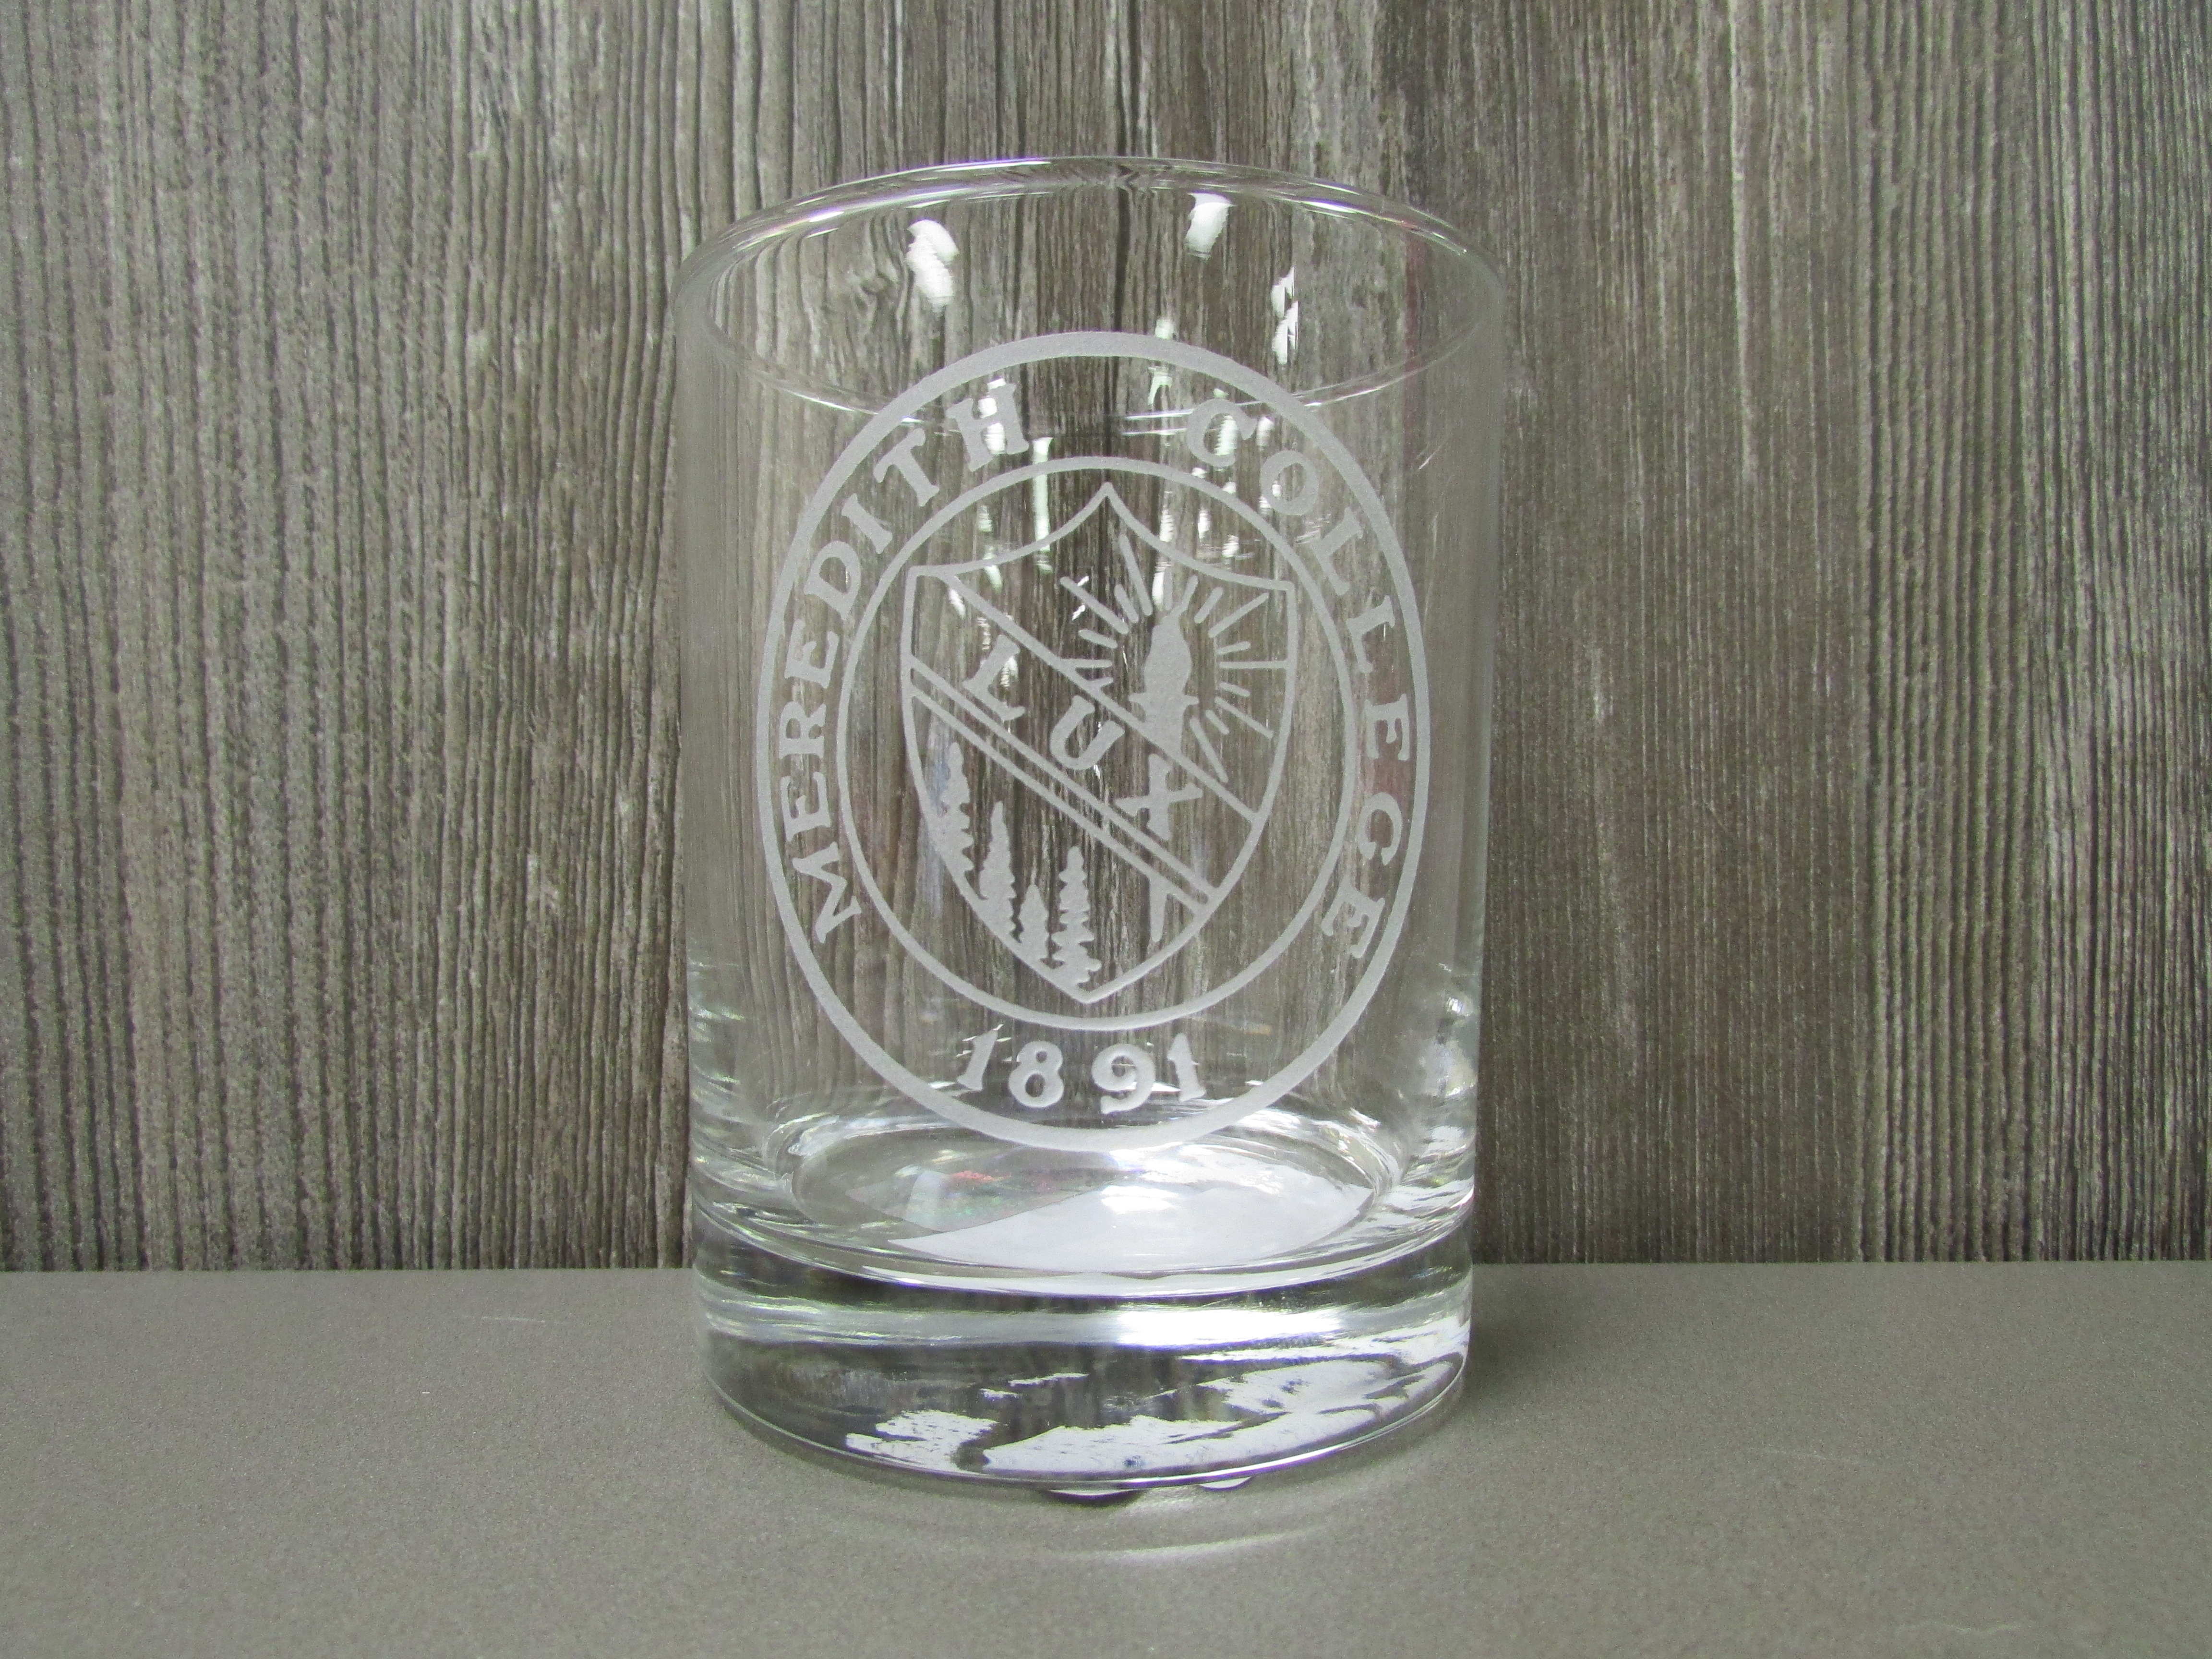 Image for the Double Old-Fashioned Glass product